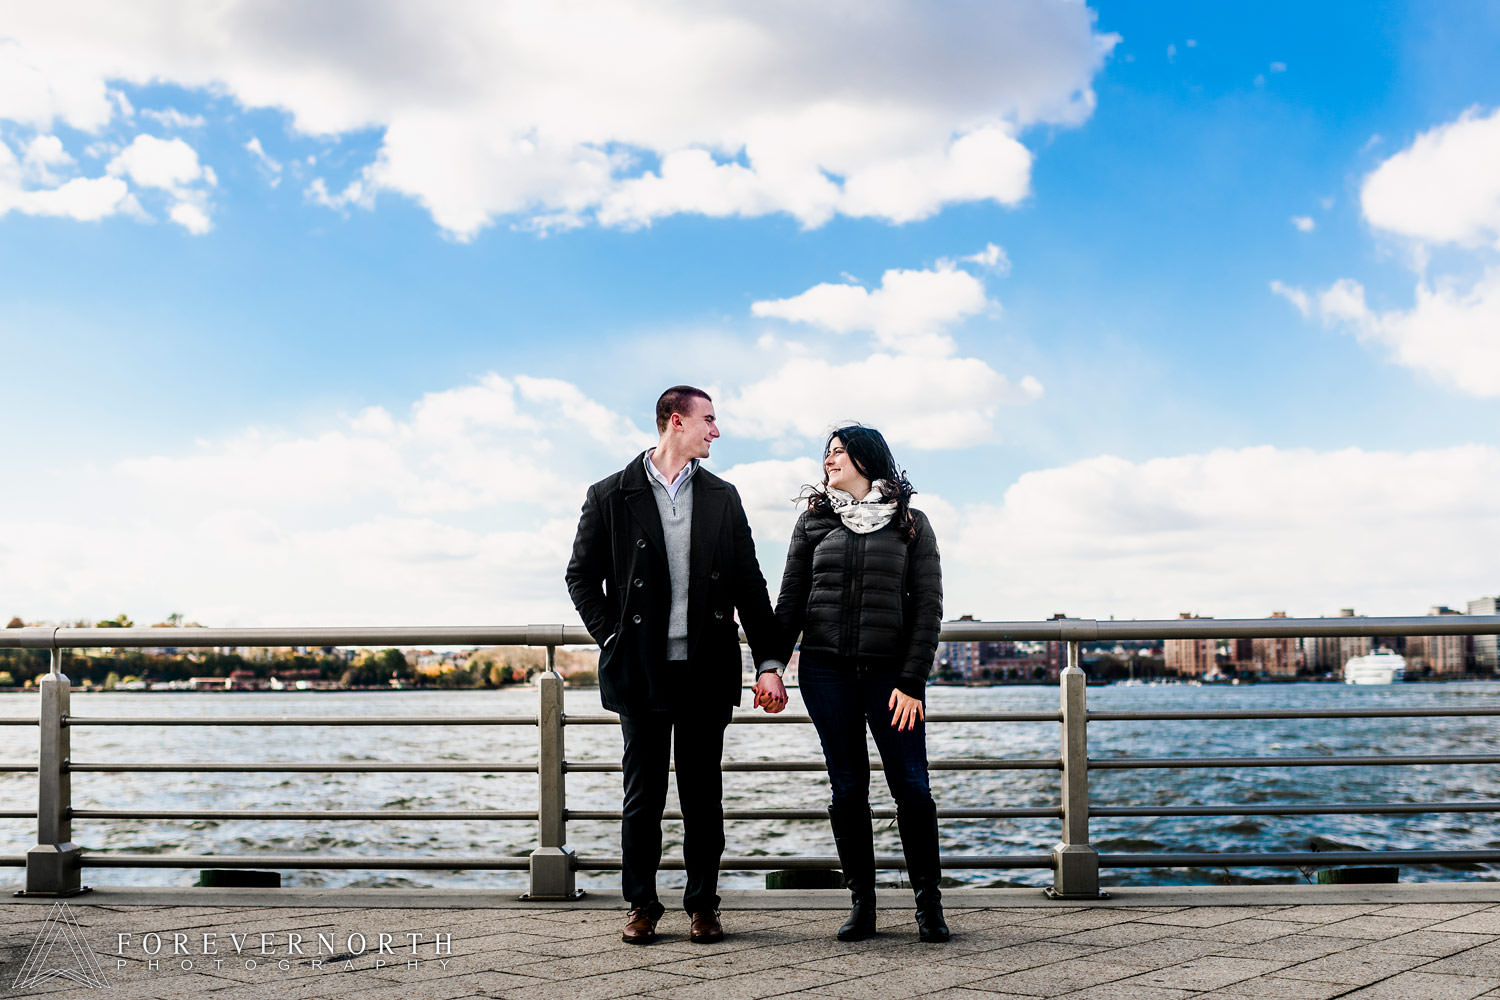 Cainero-Hudson-River-Park-Pier-62-New-York-Proposal-Engagement-Photographer-04.JPG